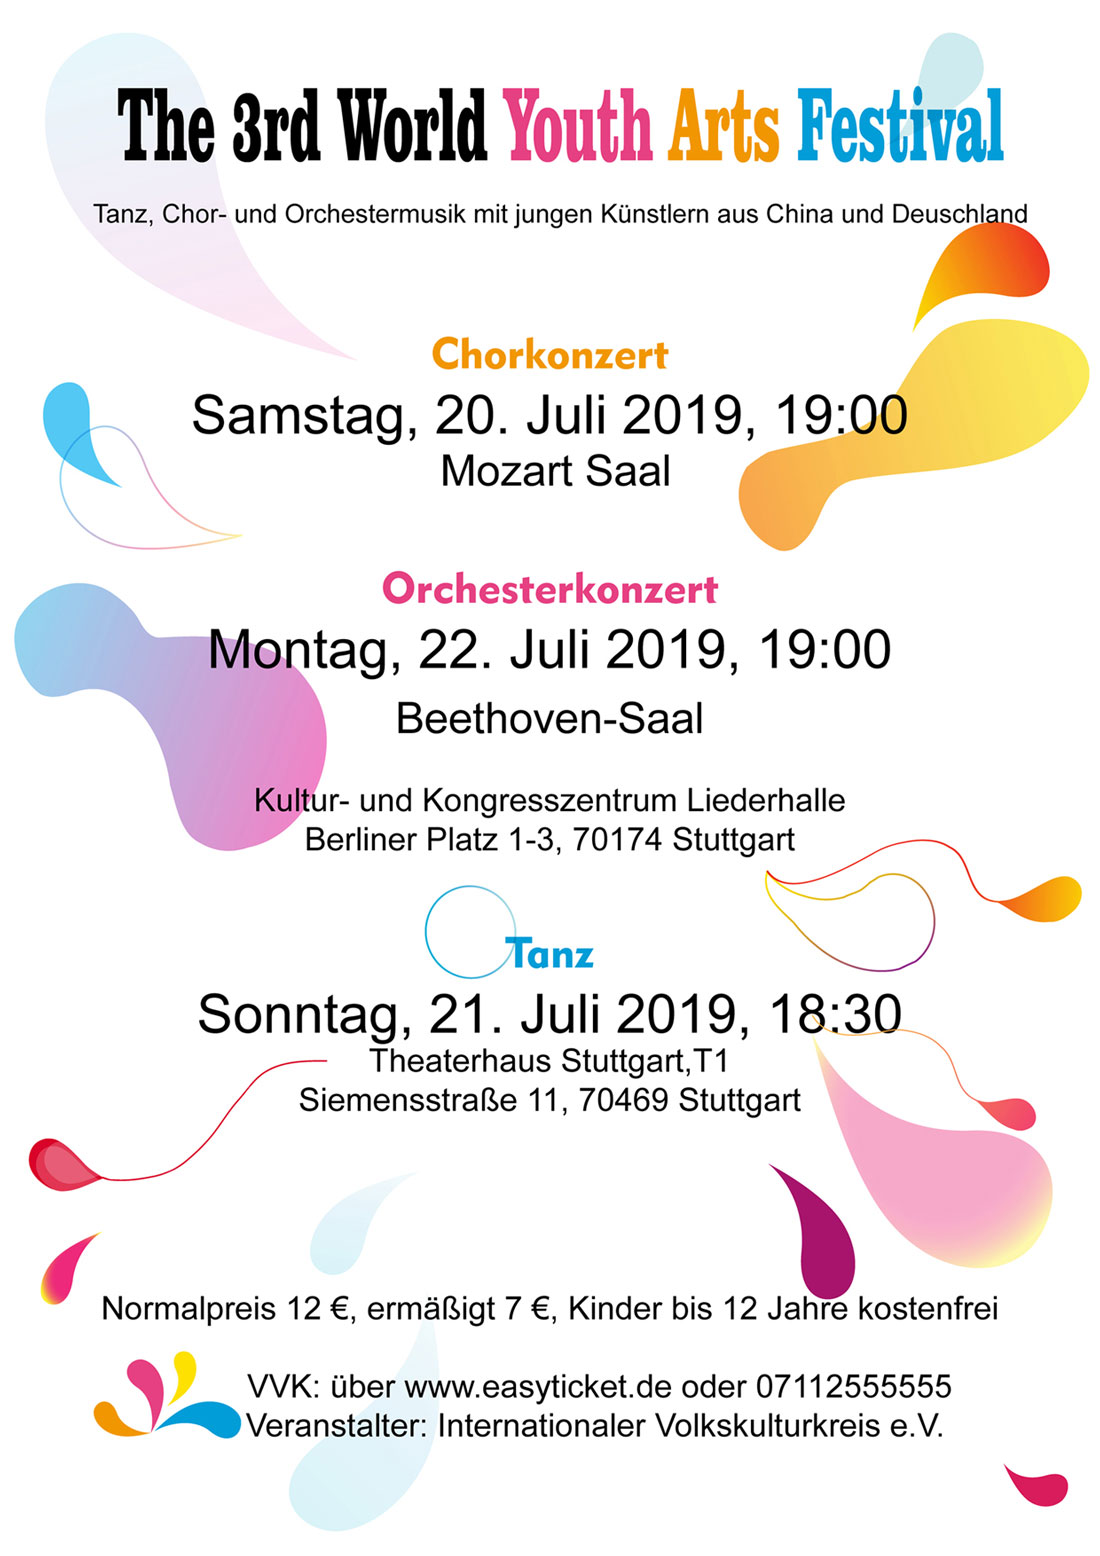 Plakat vom Third Youth Festival im Juli 2019 in Stuttgart